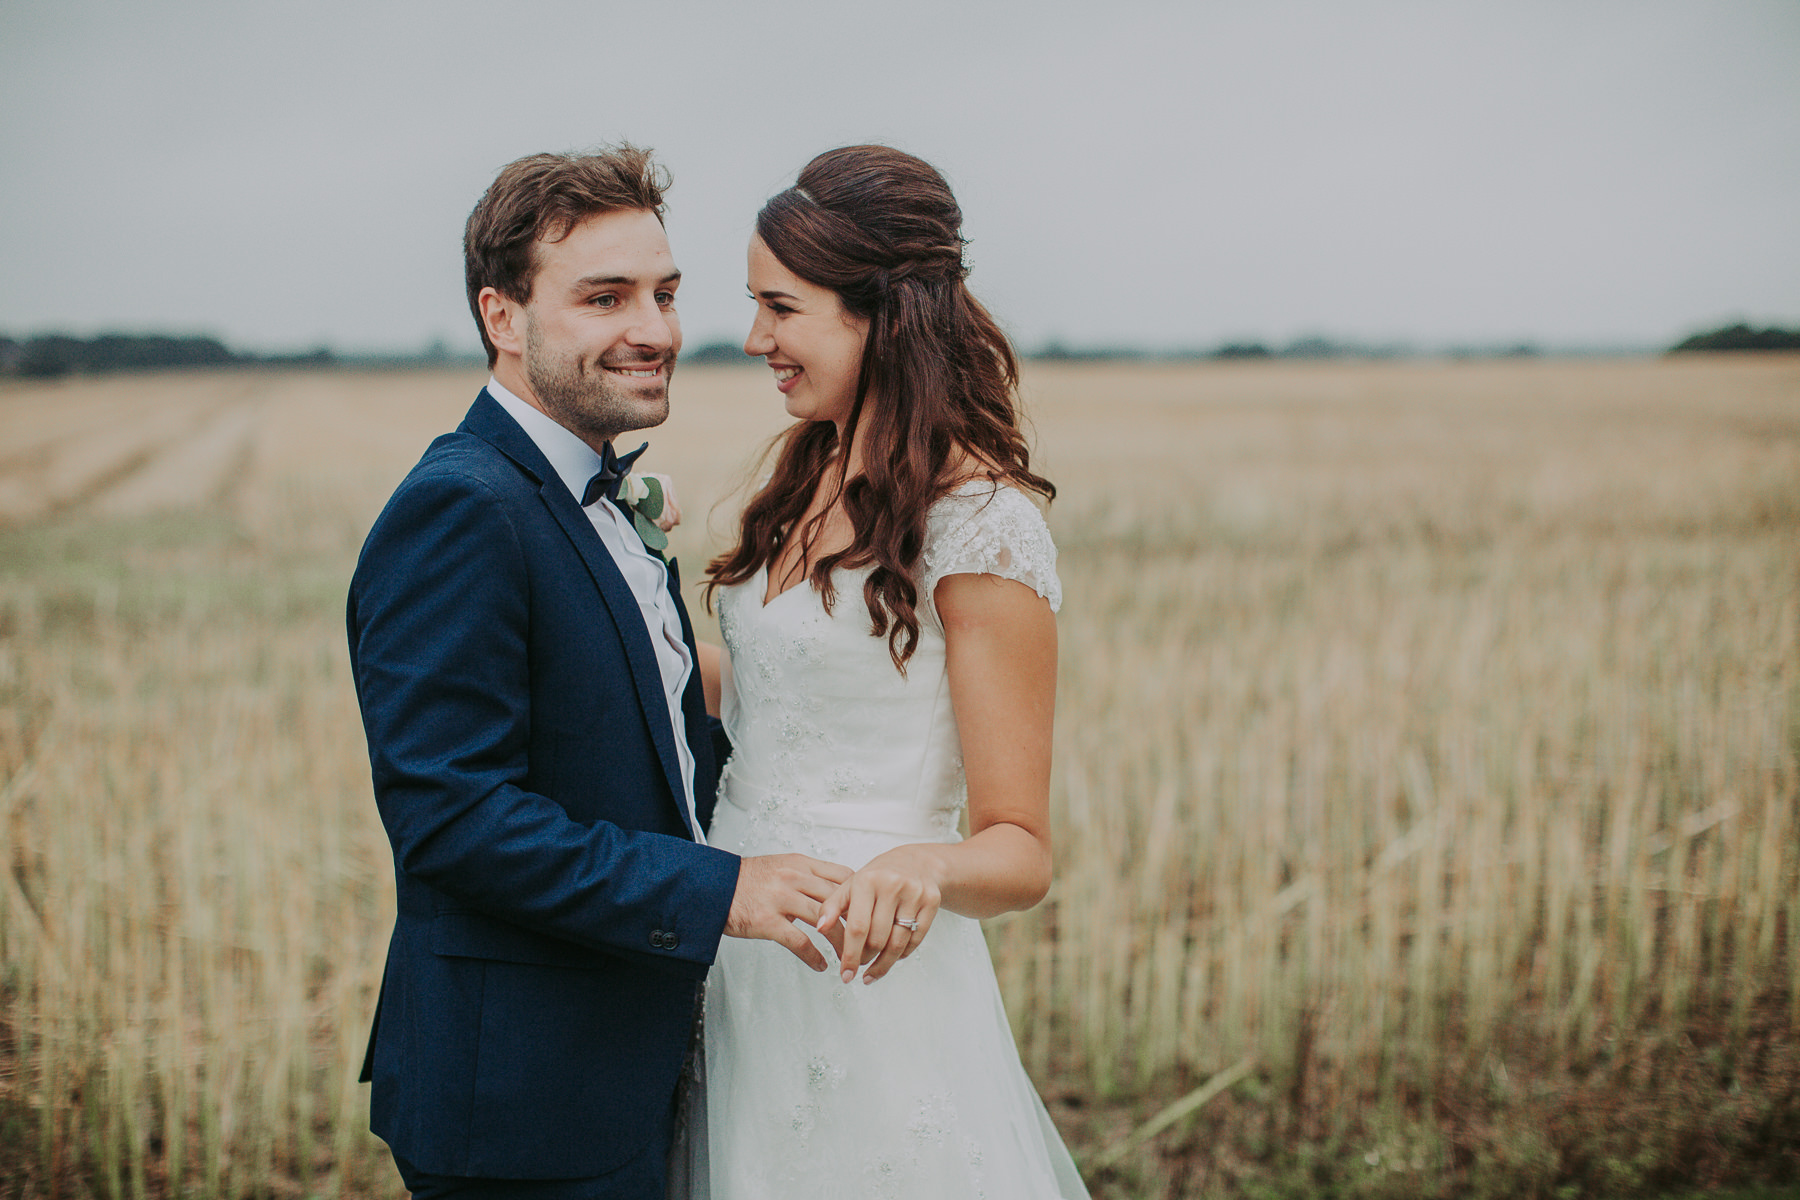 Natalie & Bill | Barmbyfield Barns Wedding 95